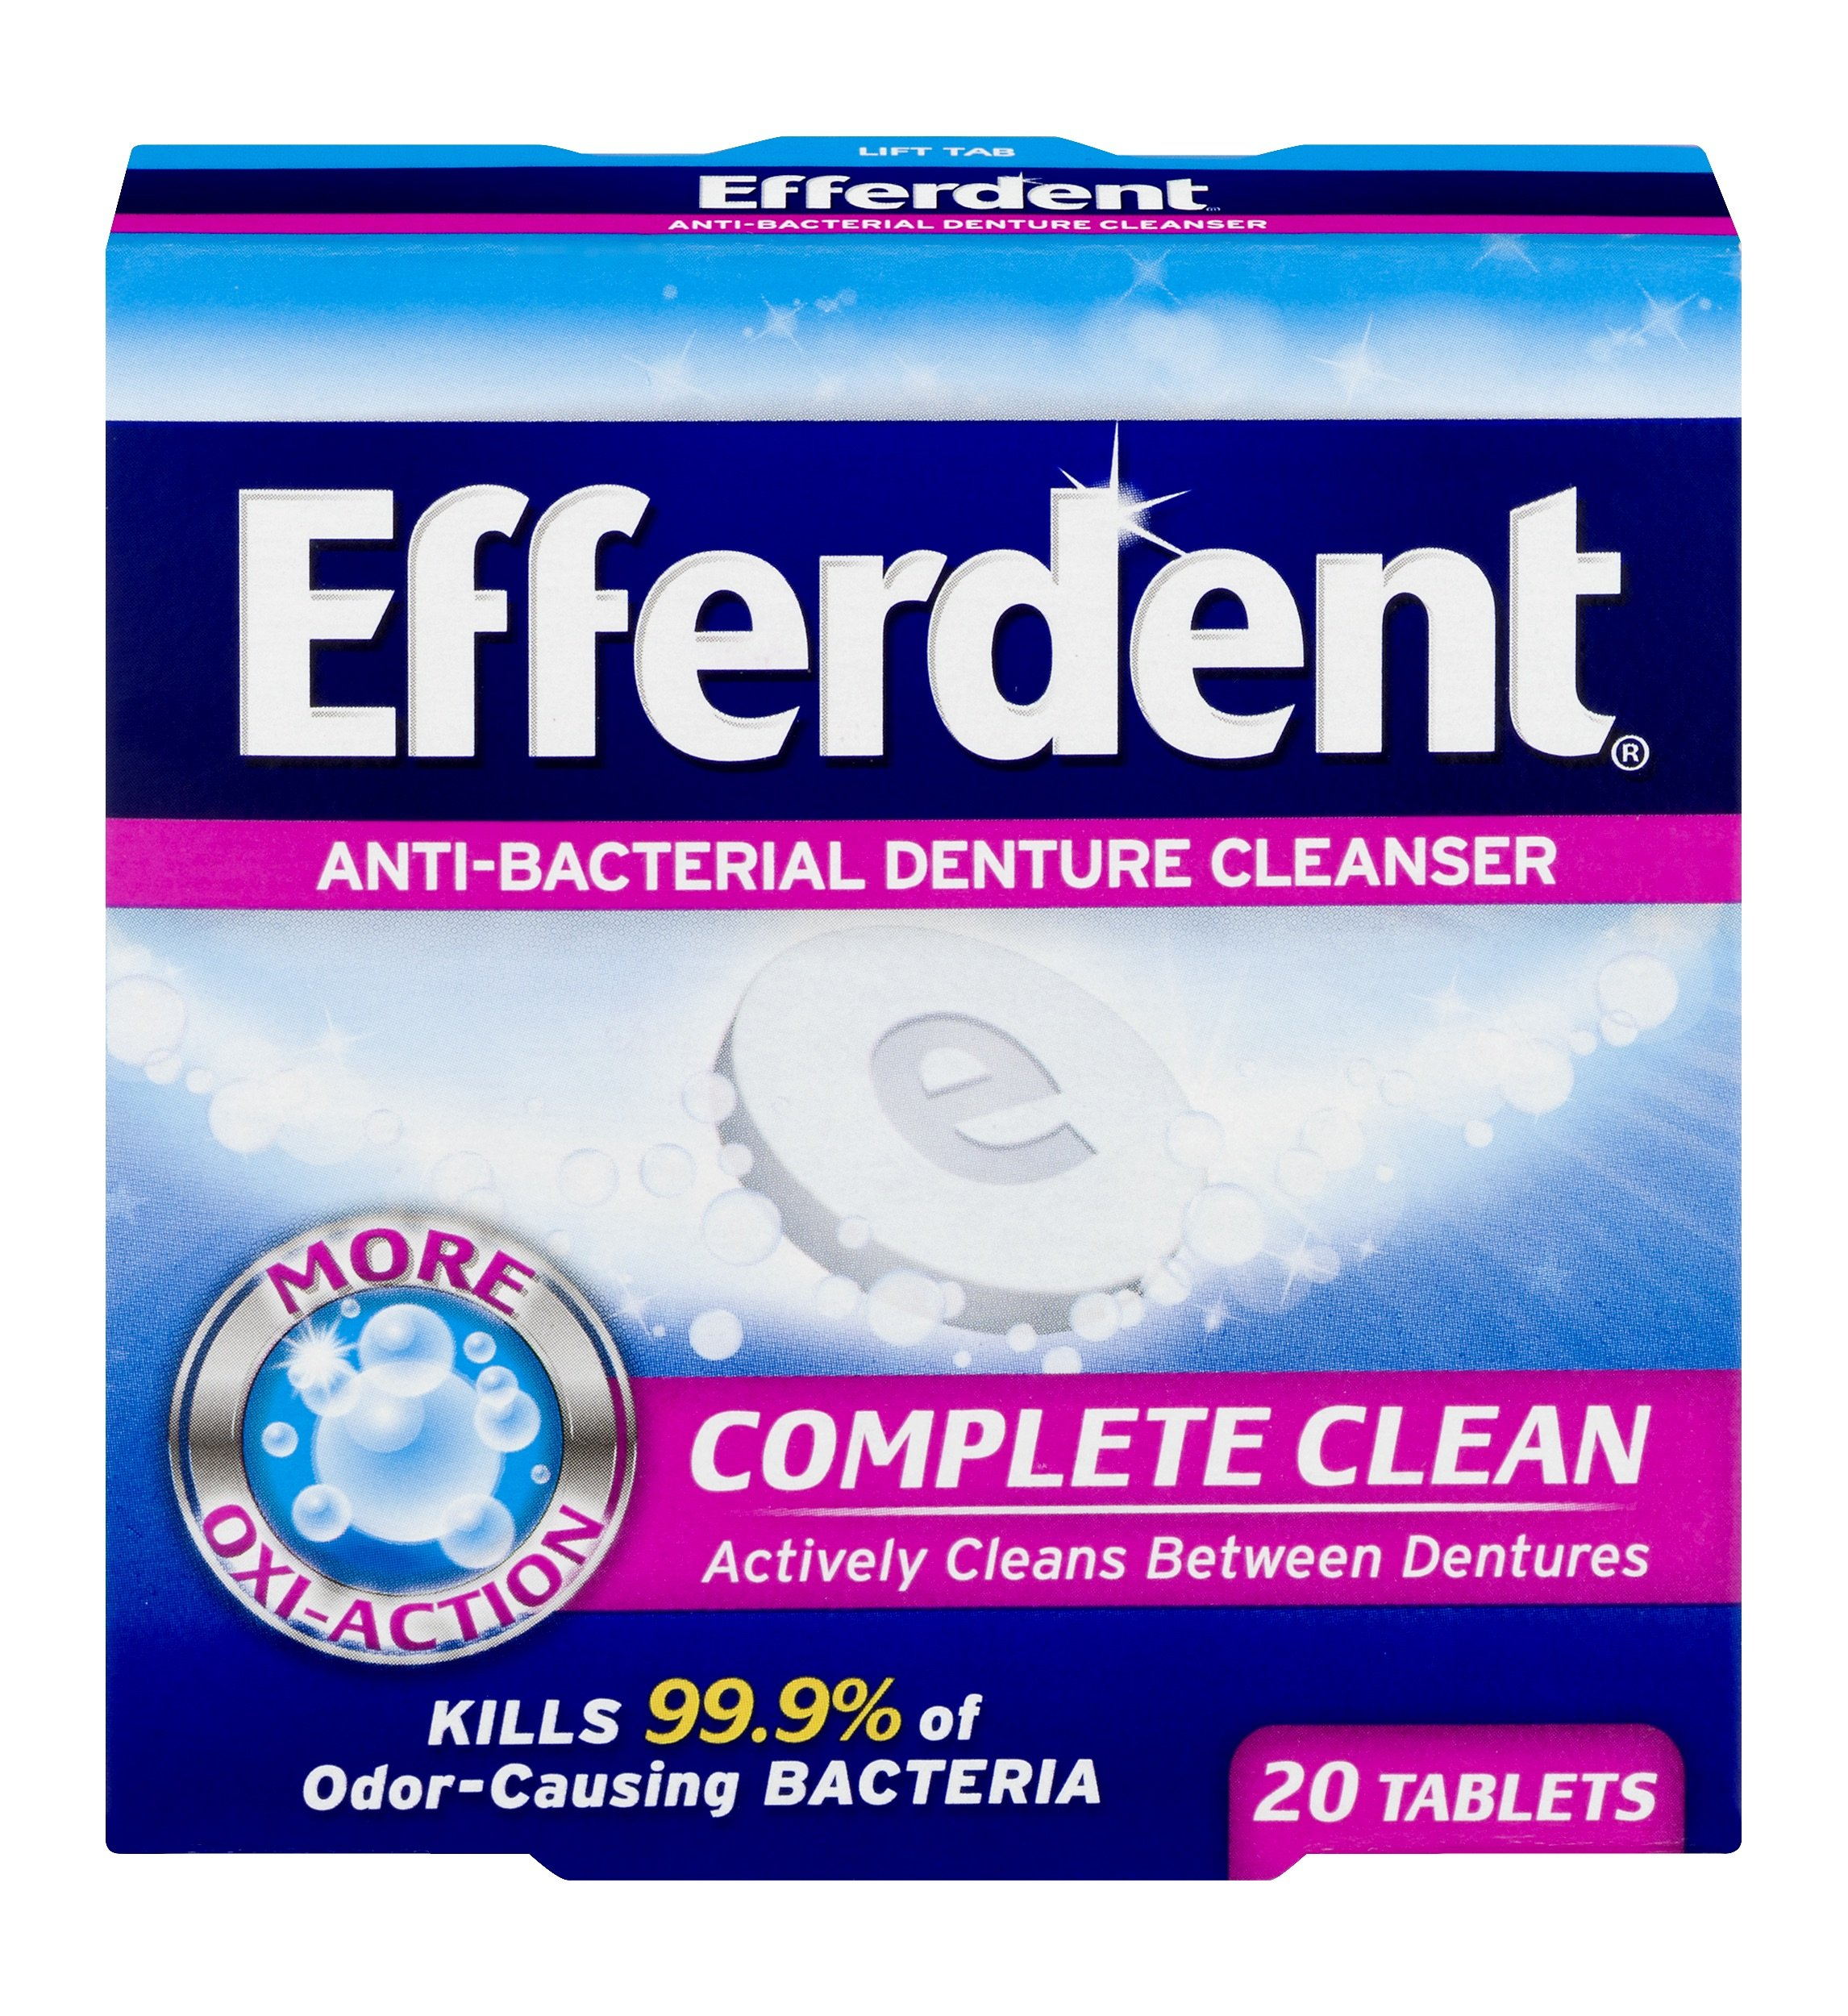 Efferdent Anti-Bacterial Denture Cleansers | 20 tablets | Pack of 12 | Actively Cleans Between Dentures | Packaging May Vary